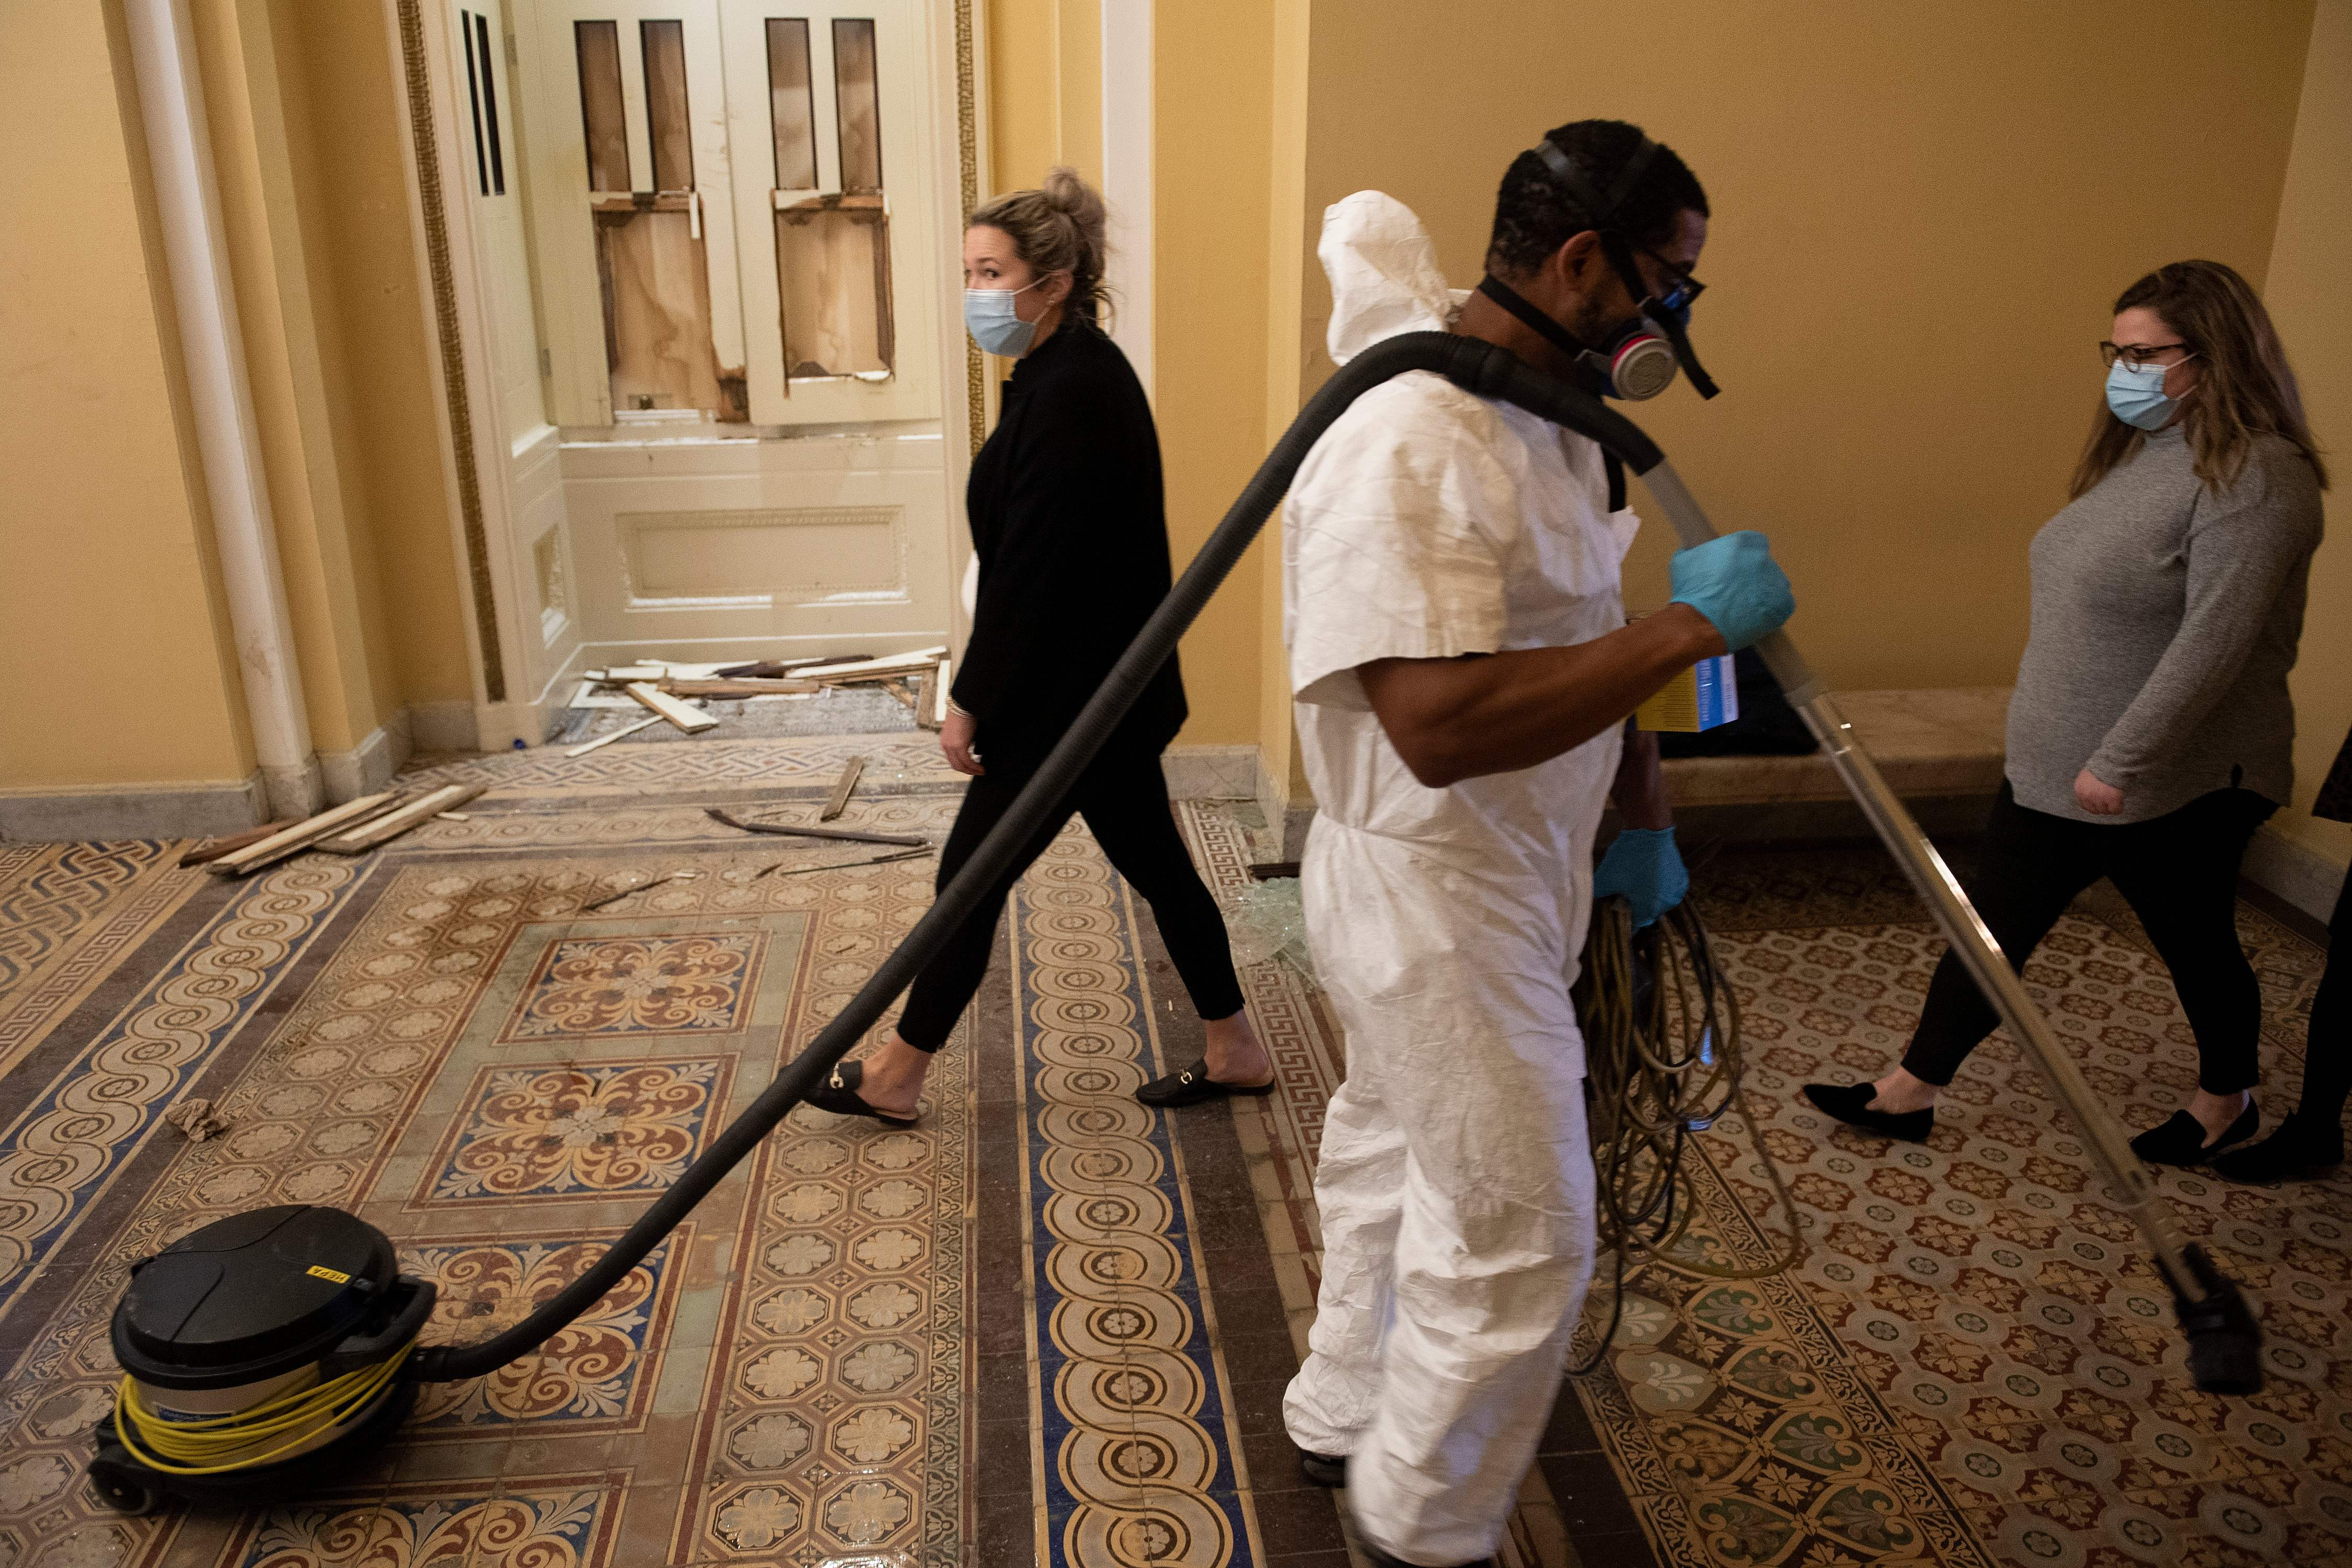 A worker walks while clearing damage a day after a pro-Trump mob broke into the US Capitol January 7, 2021, in Washington, DC. (Photo by Brendan Smialowski / AFP) (Photo by BRENDAN SMIALOWSKI/AFP via Getty Images)